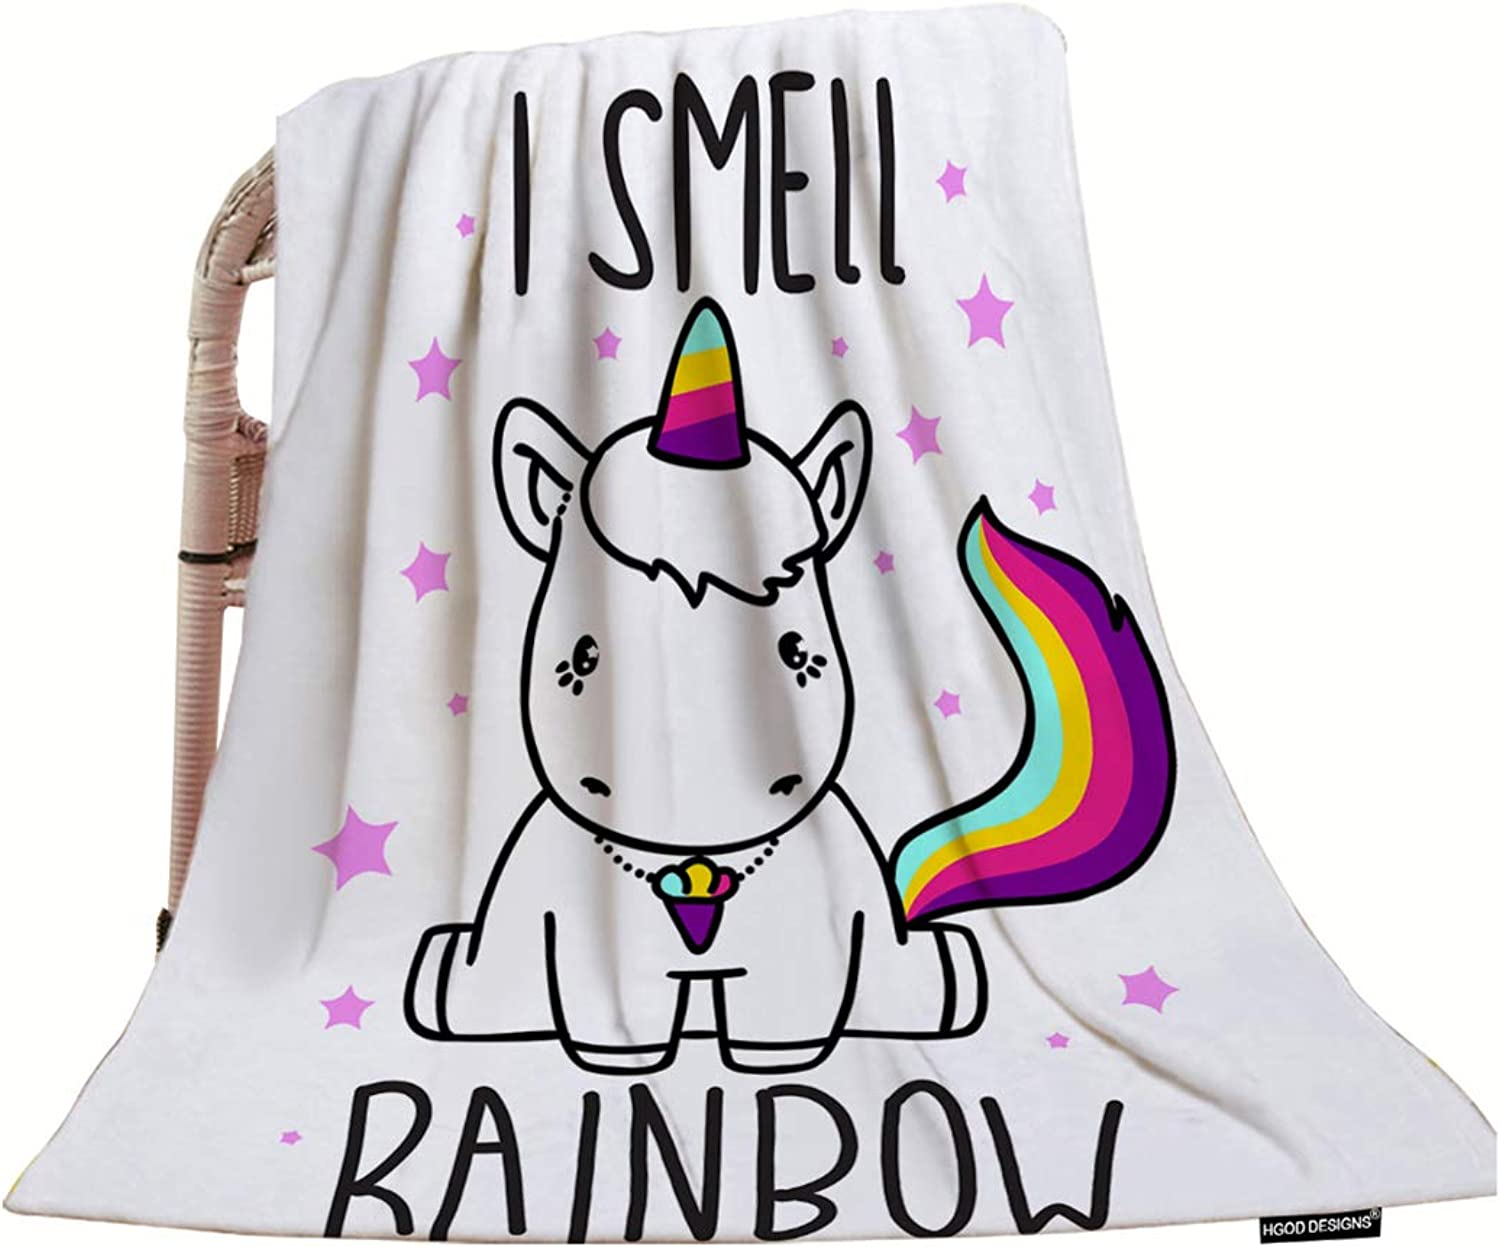 HGOD DESIGNS Unicorn Throw Blanket,Cute Magical Unicorn Baby I Smell Rainbow Soft Warm Decorative Throw Blanket for Bed Chair Couch Sofa 50 X60